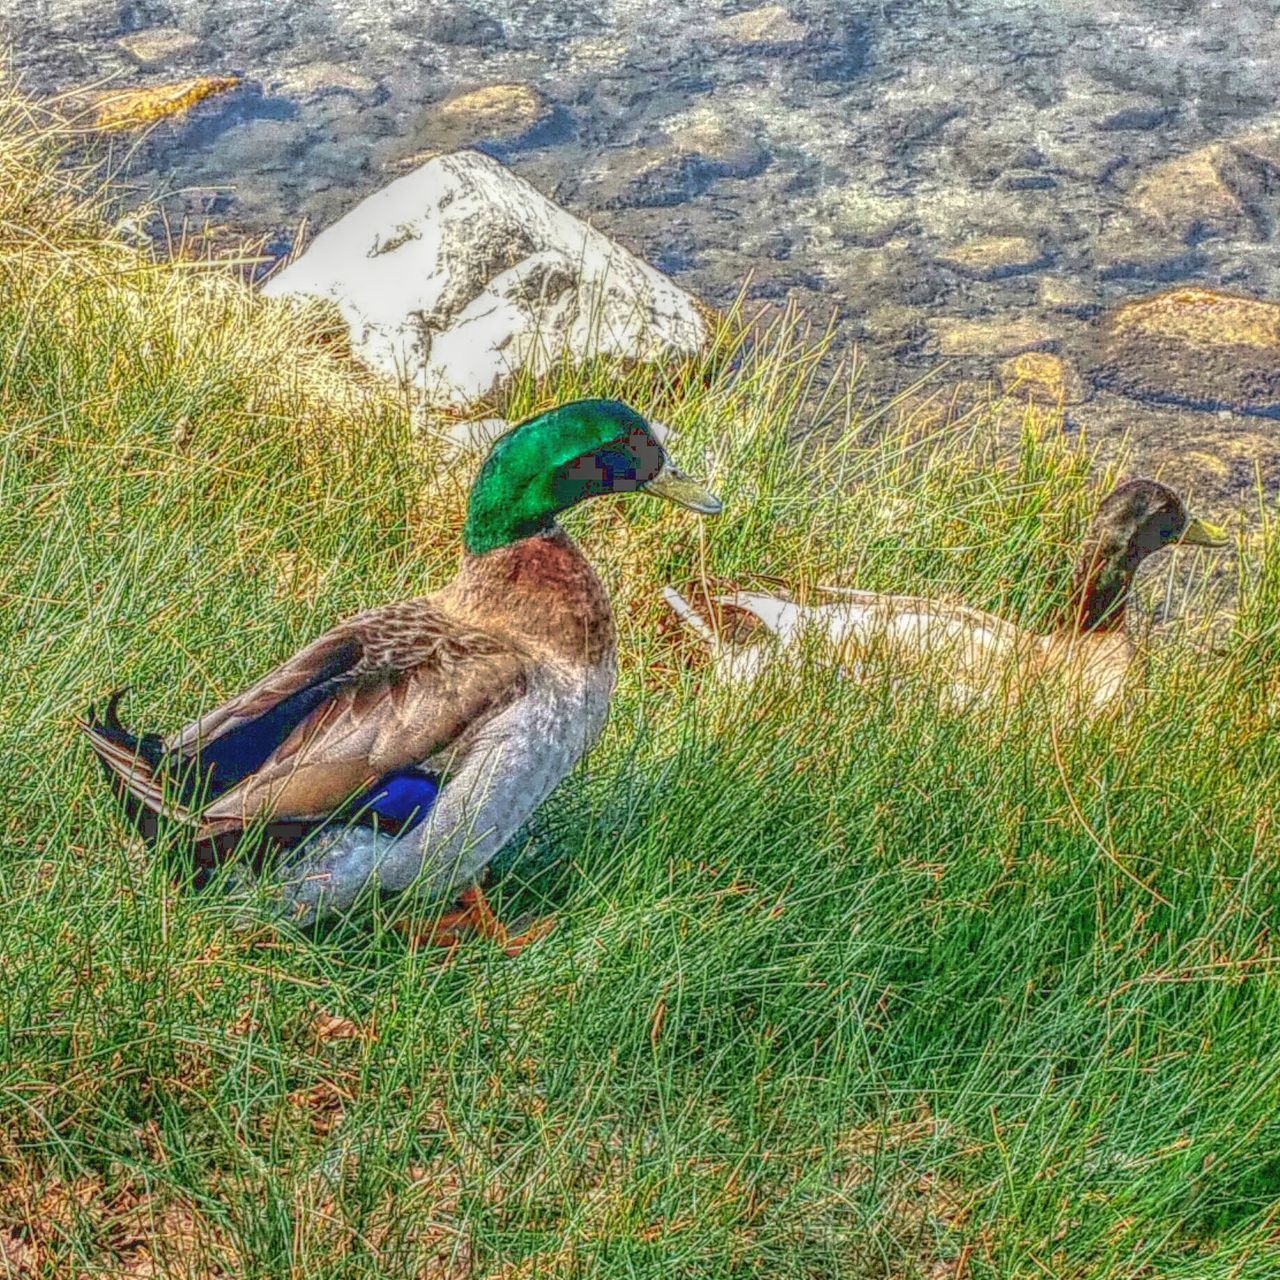 grass, animal themes, nature, animals in the wild, bird, day, field, outdoors, green color, duck, animal wildlife, lake, beauty in nature, one animal, no people, perching, water